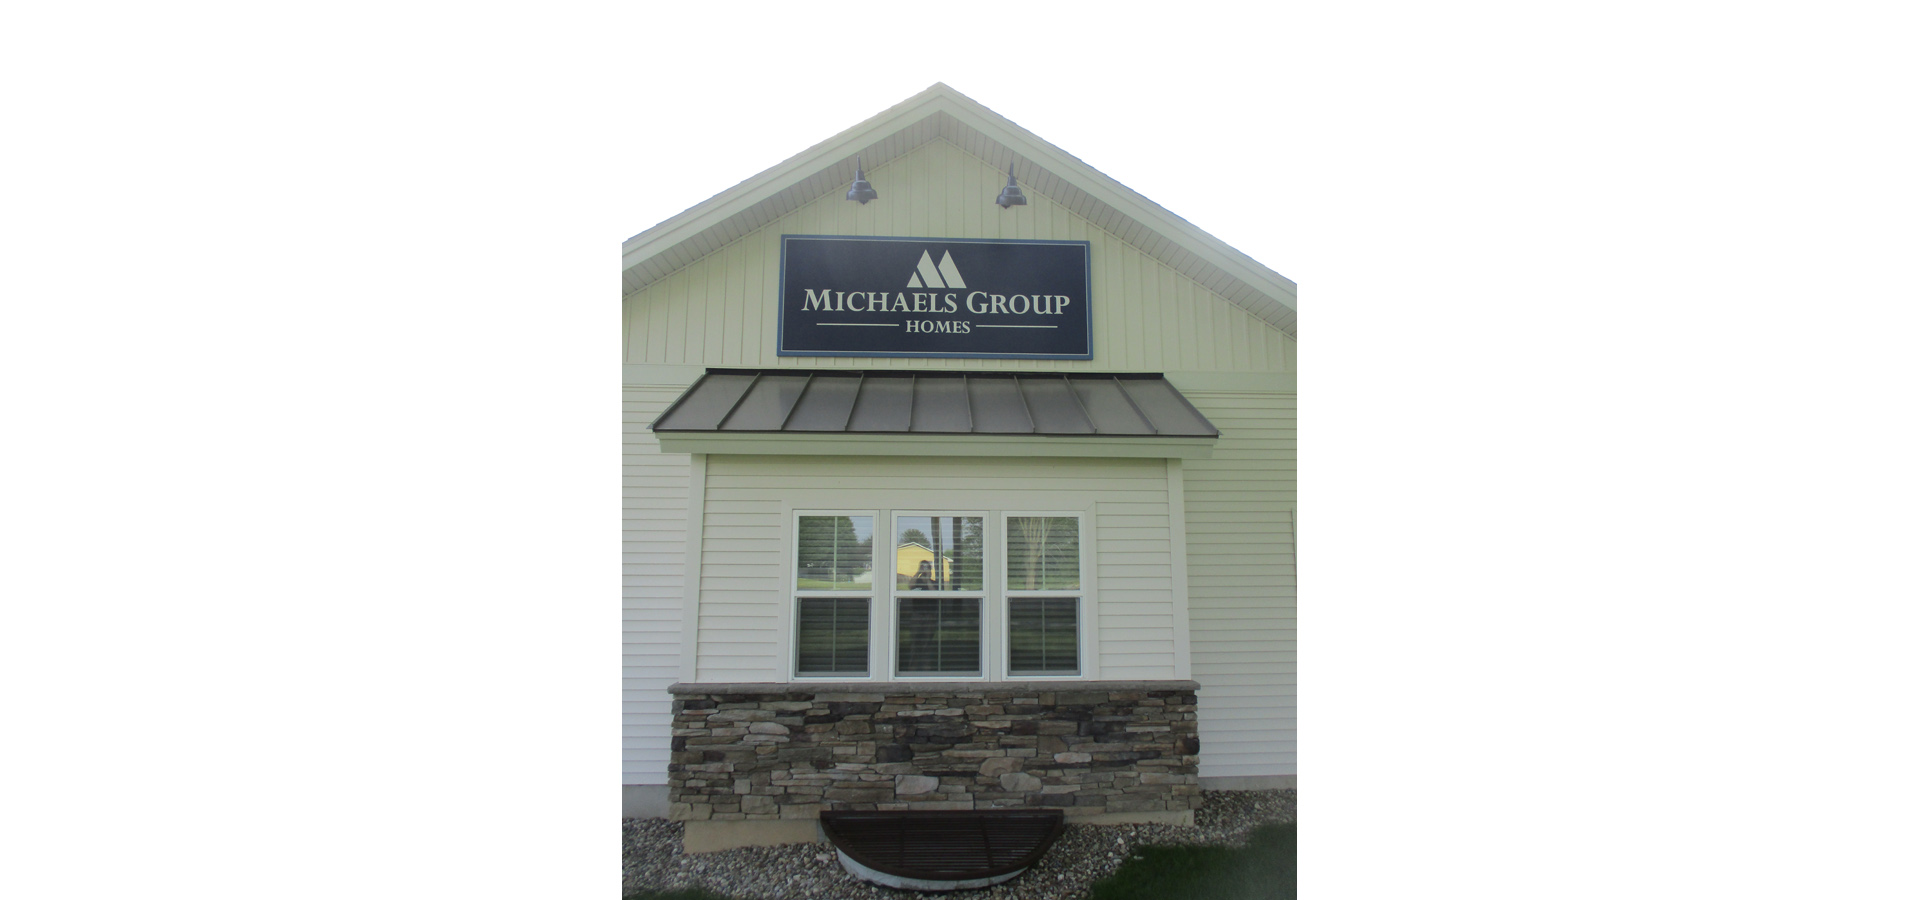 Michaels Group Homes Office Location in Mechanicville, NY